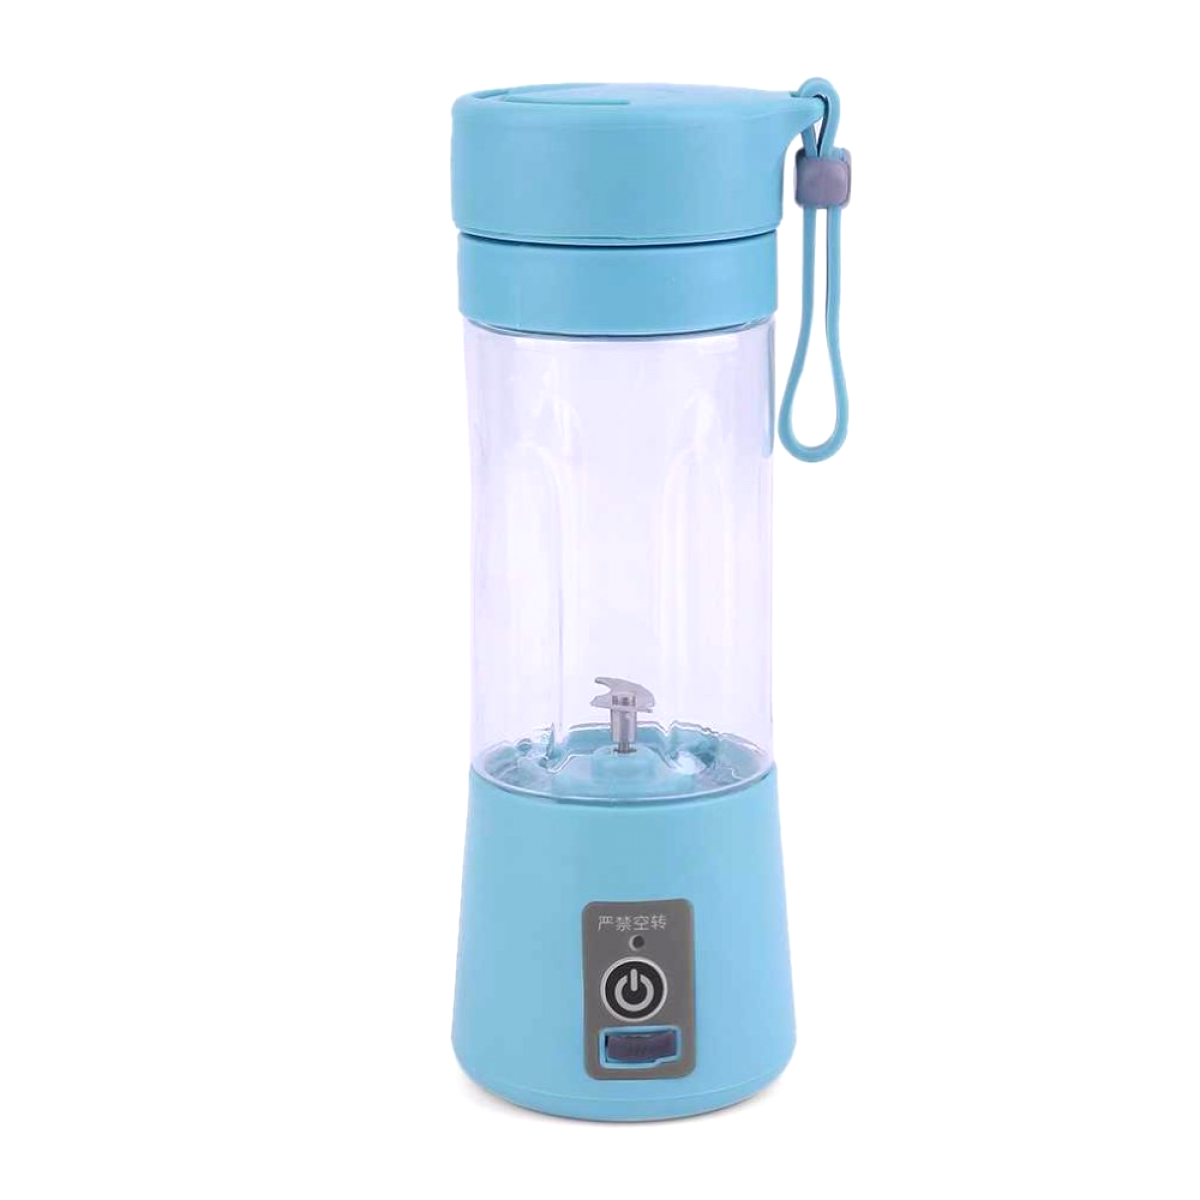 Pet 400ml Portable Filter Travel Cups Drinking Bowls Dog: Electric Fruit Juicer Cup Mini Blender Portable Usb Juice